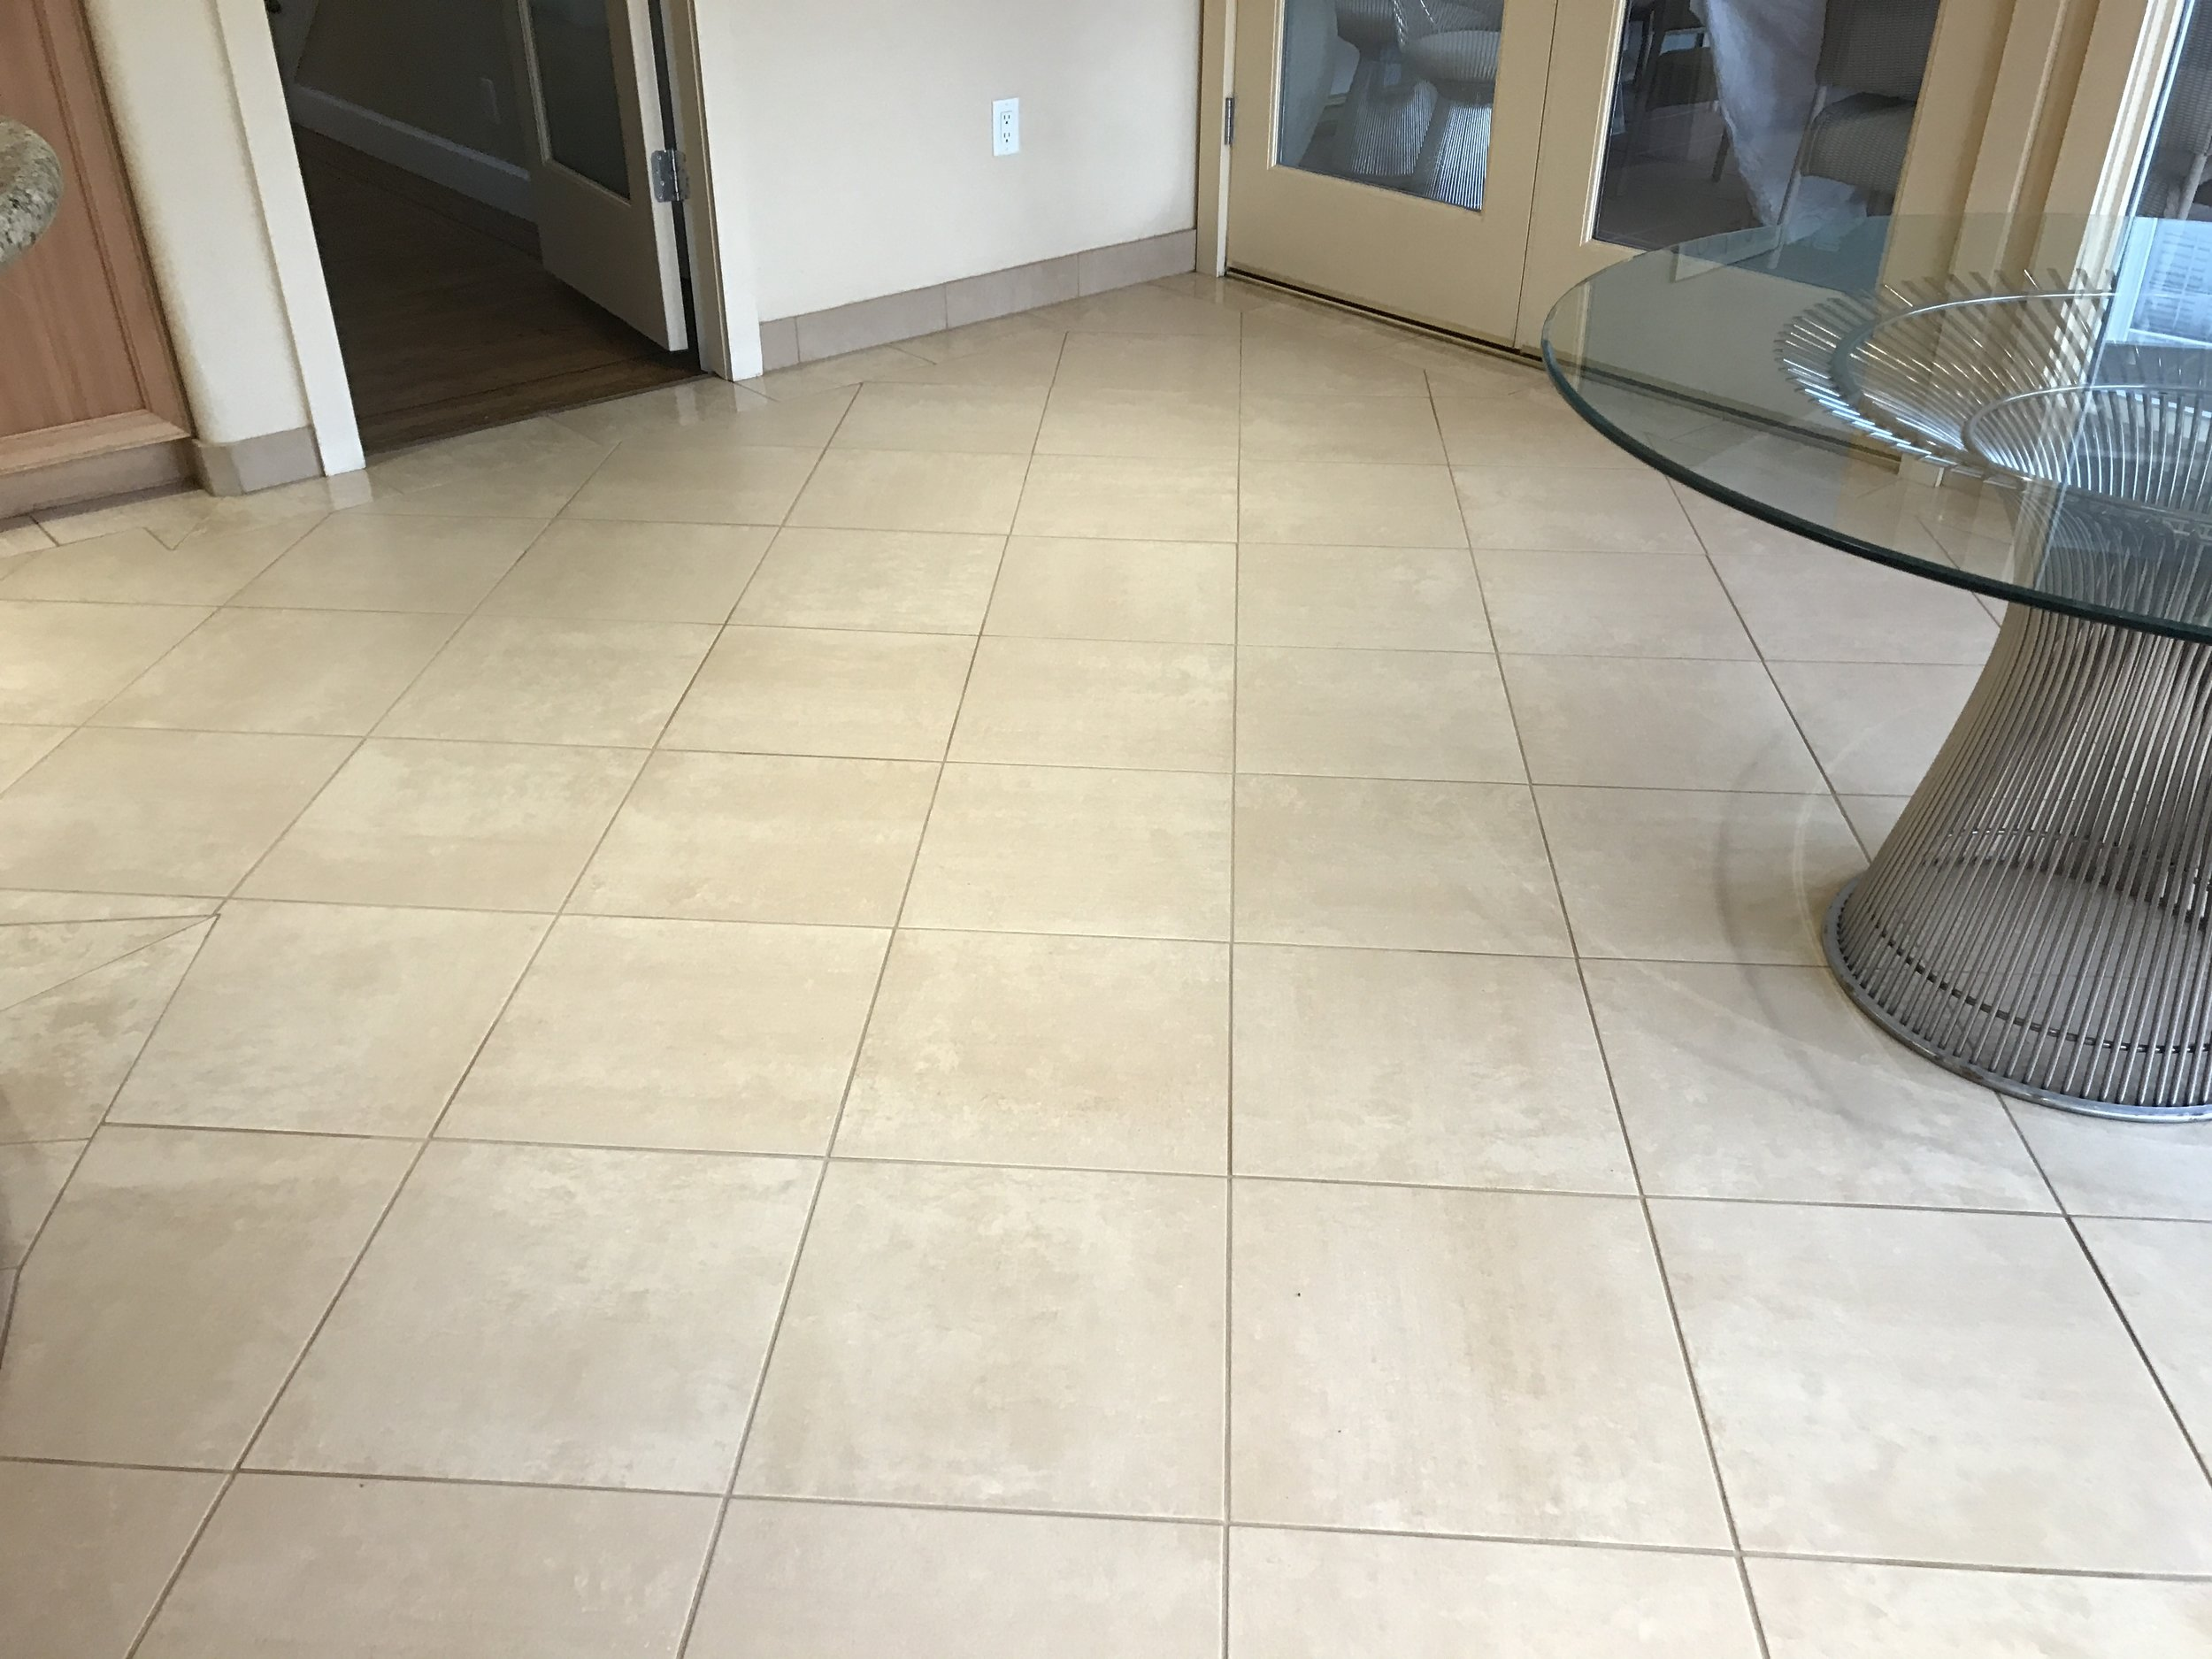 Kitchen floor Tile and Grout Cleaning AFTER.